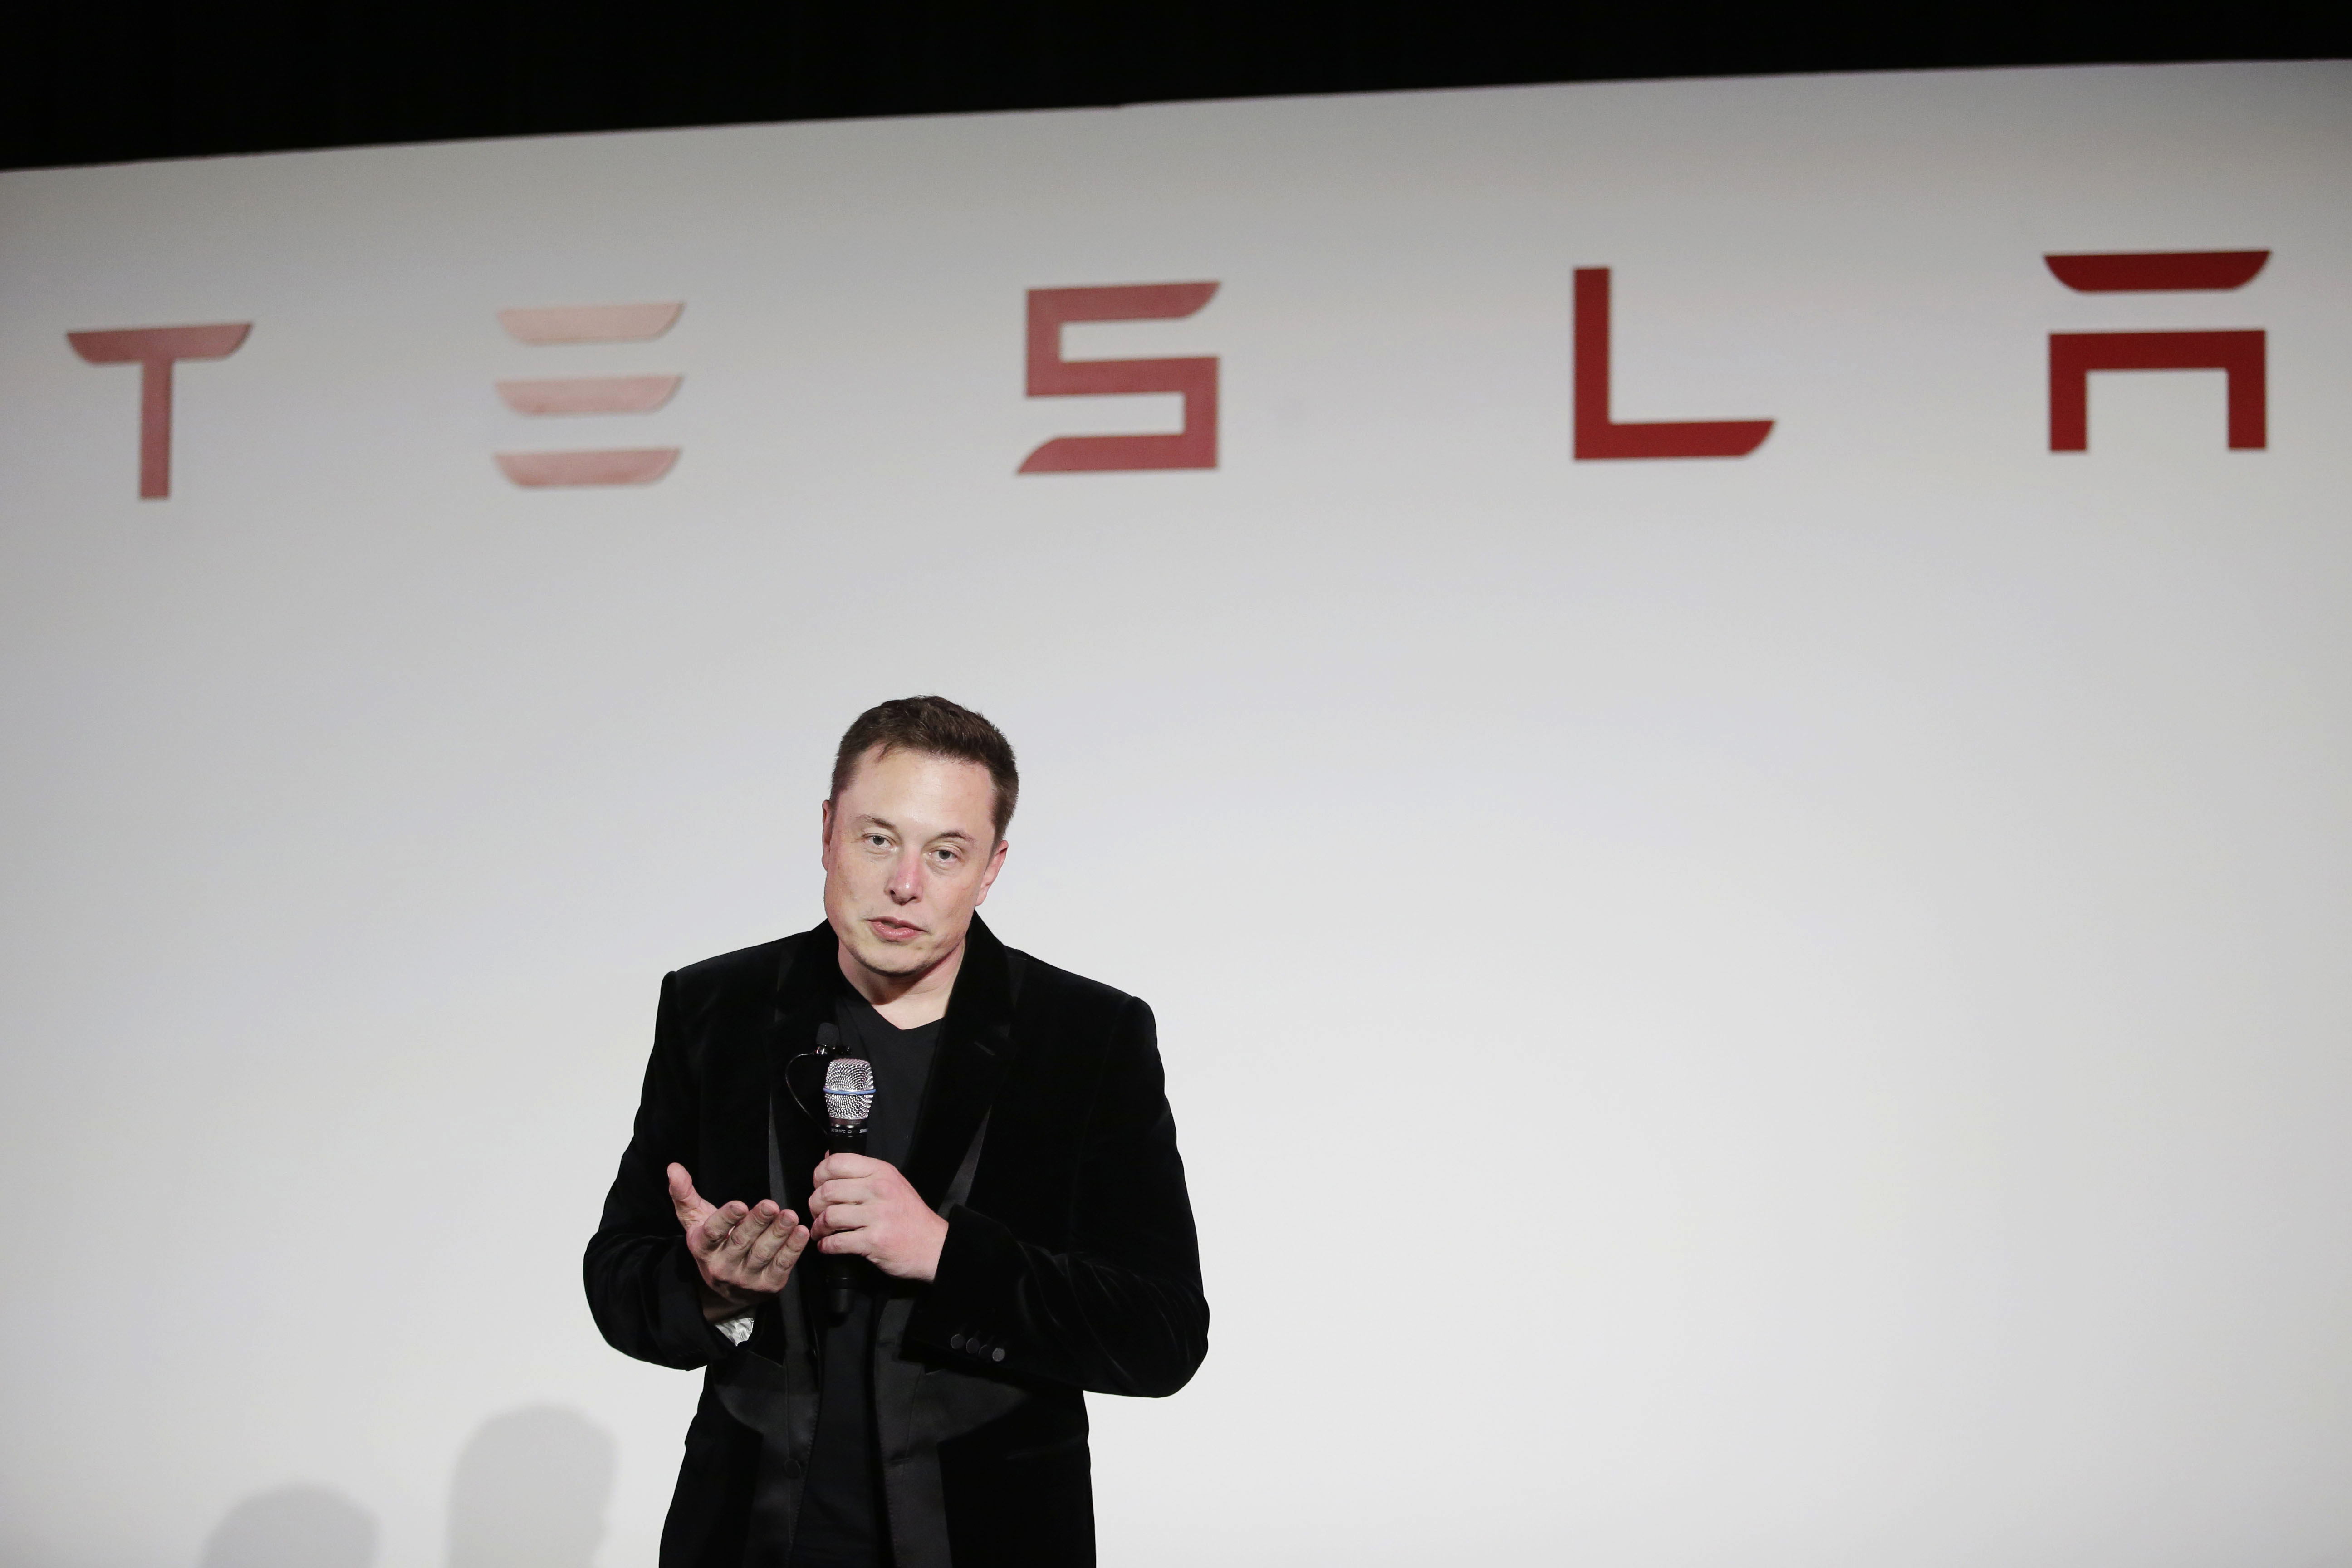 Elon Musk, CEO of Tesla Motors Inc., talks about the Model X car at the company's headquarters  Tuesday, Sept. 29, 2015, in Fremont, California.